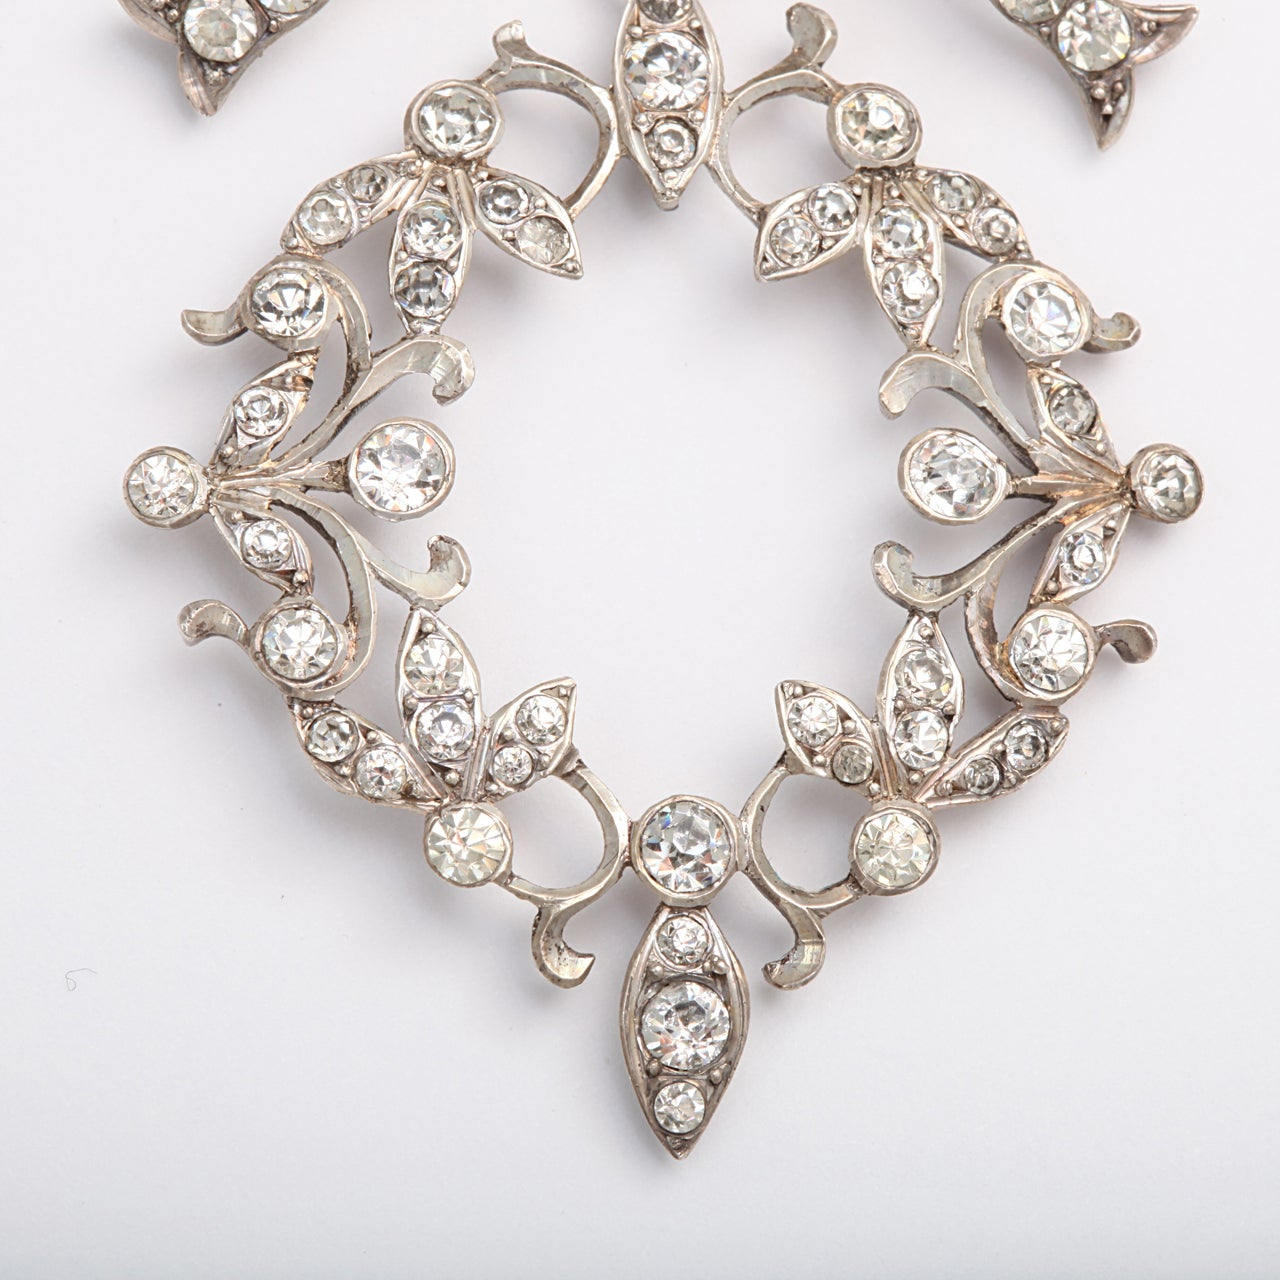 Garlands and Bows on a French Paste Pendant For Sale 1